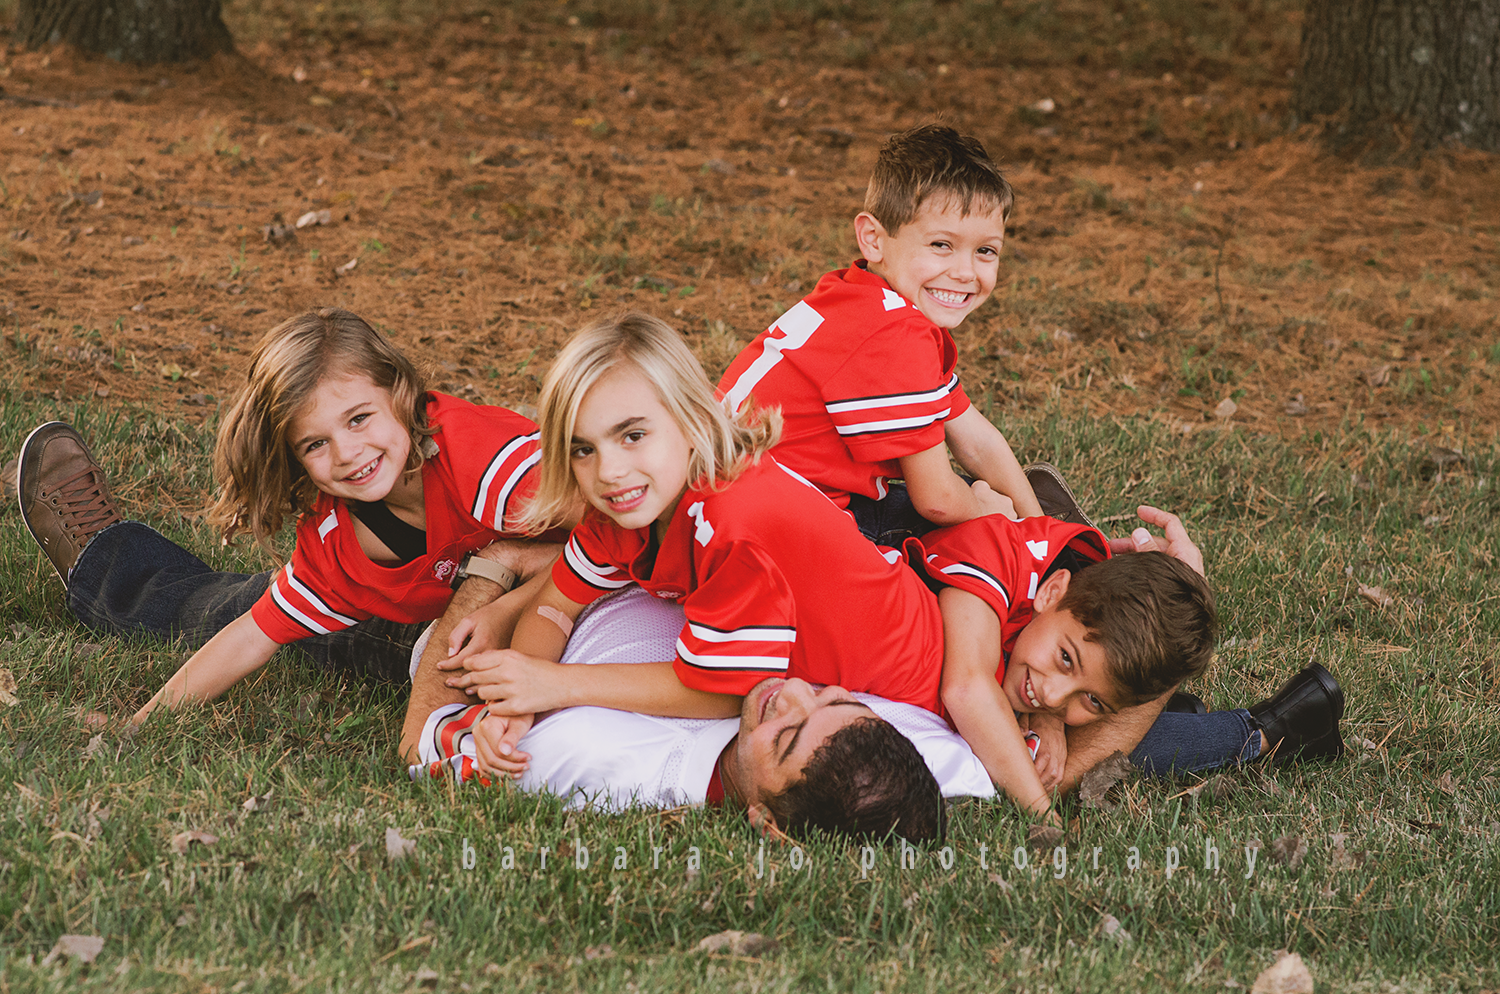 bjp-family-photographer-kids-siblings-blended-brothers-sisters-fall-mini-sessions-children-love-rachel14.png